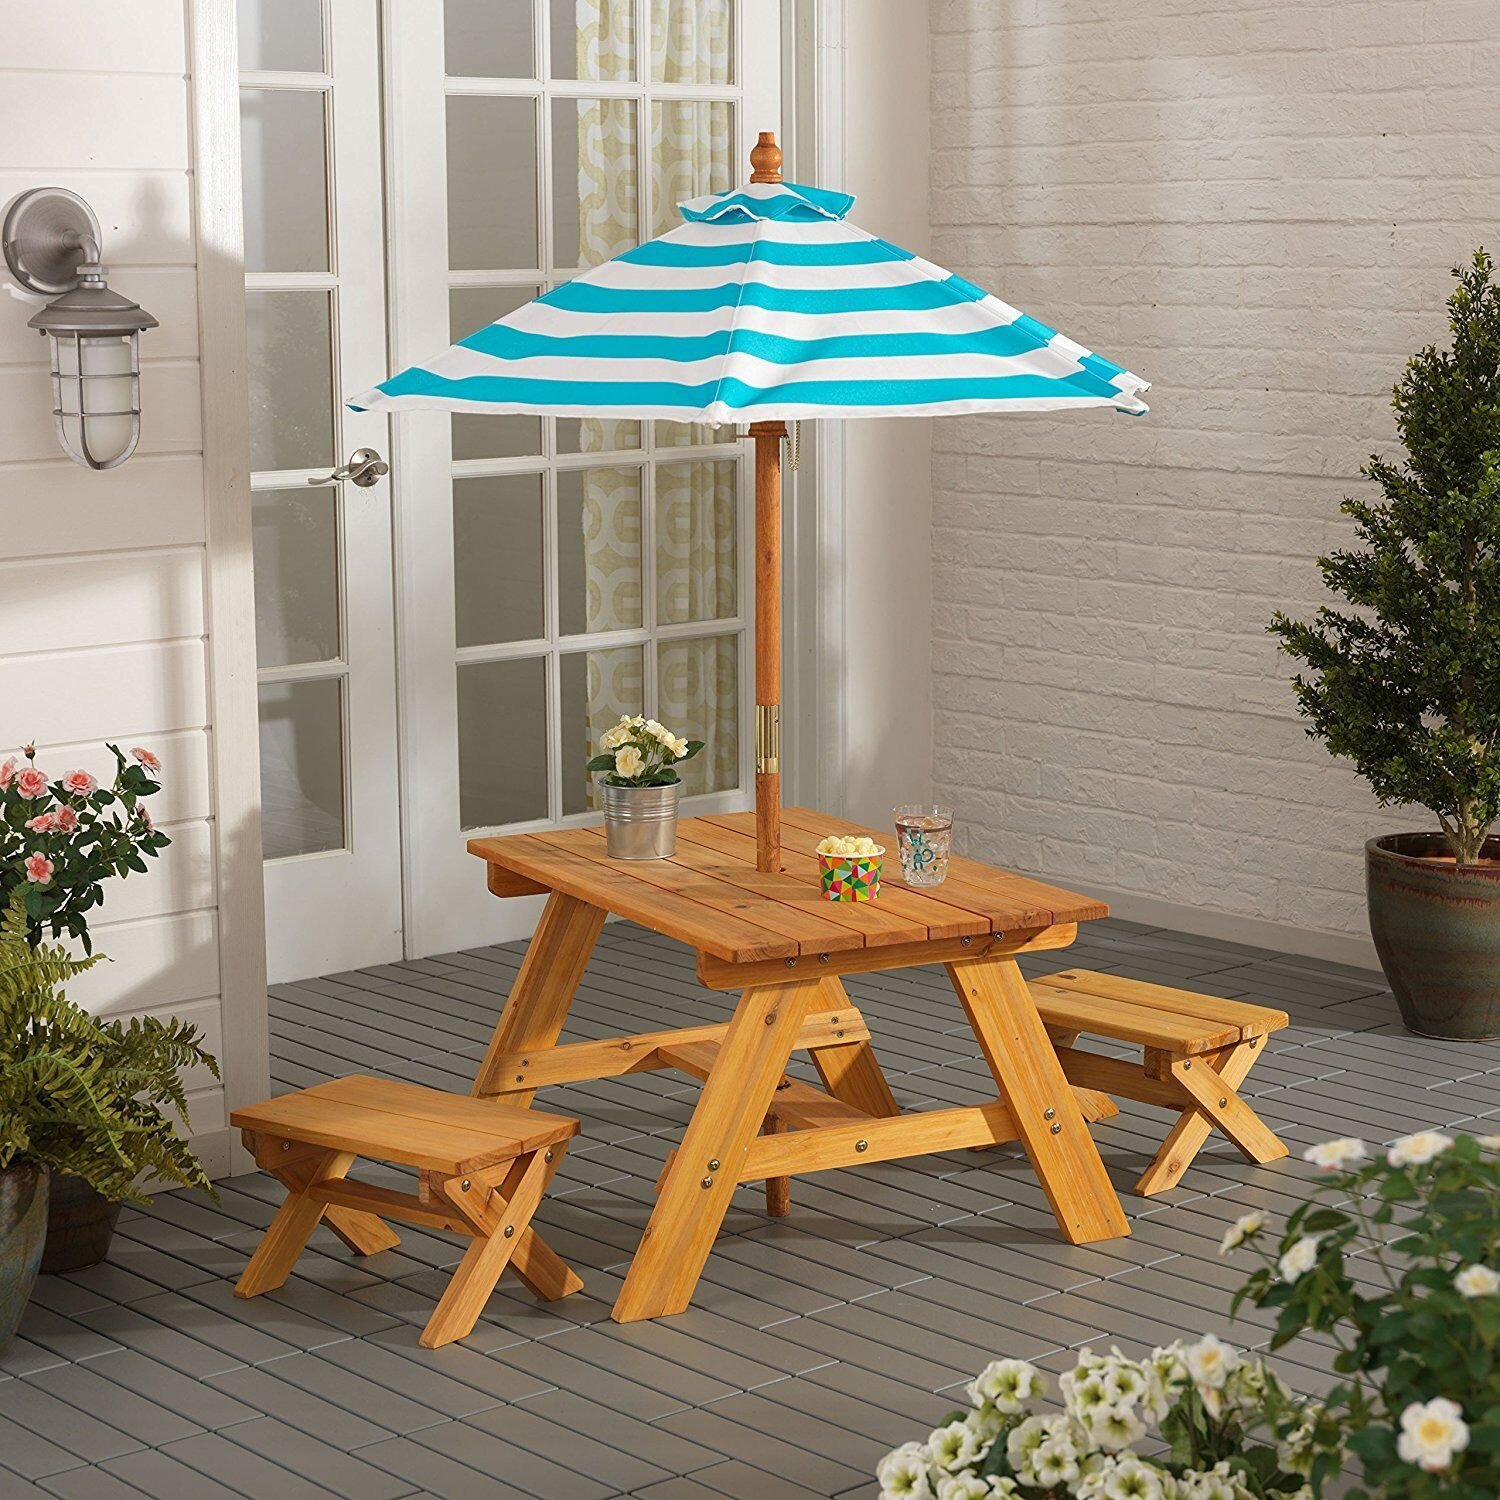 Outdoor Furniture 4Pc Kids Picnic Patio Dining Set with